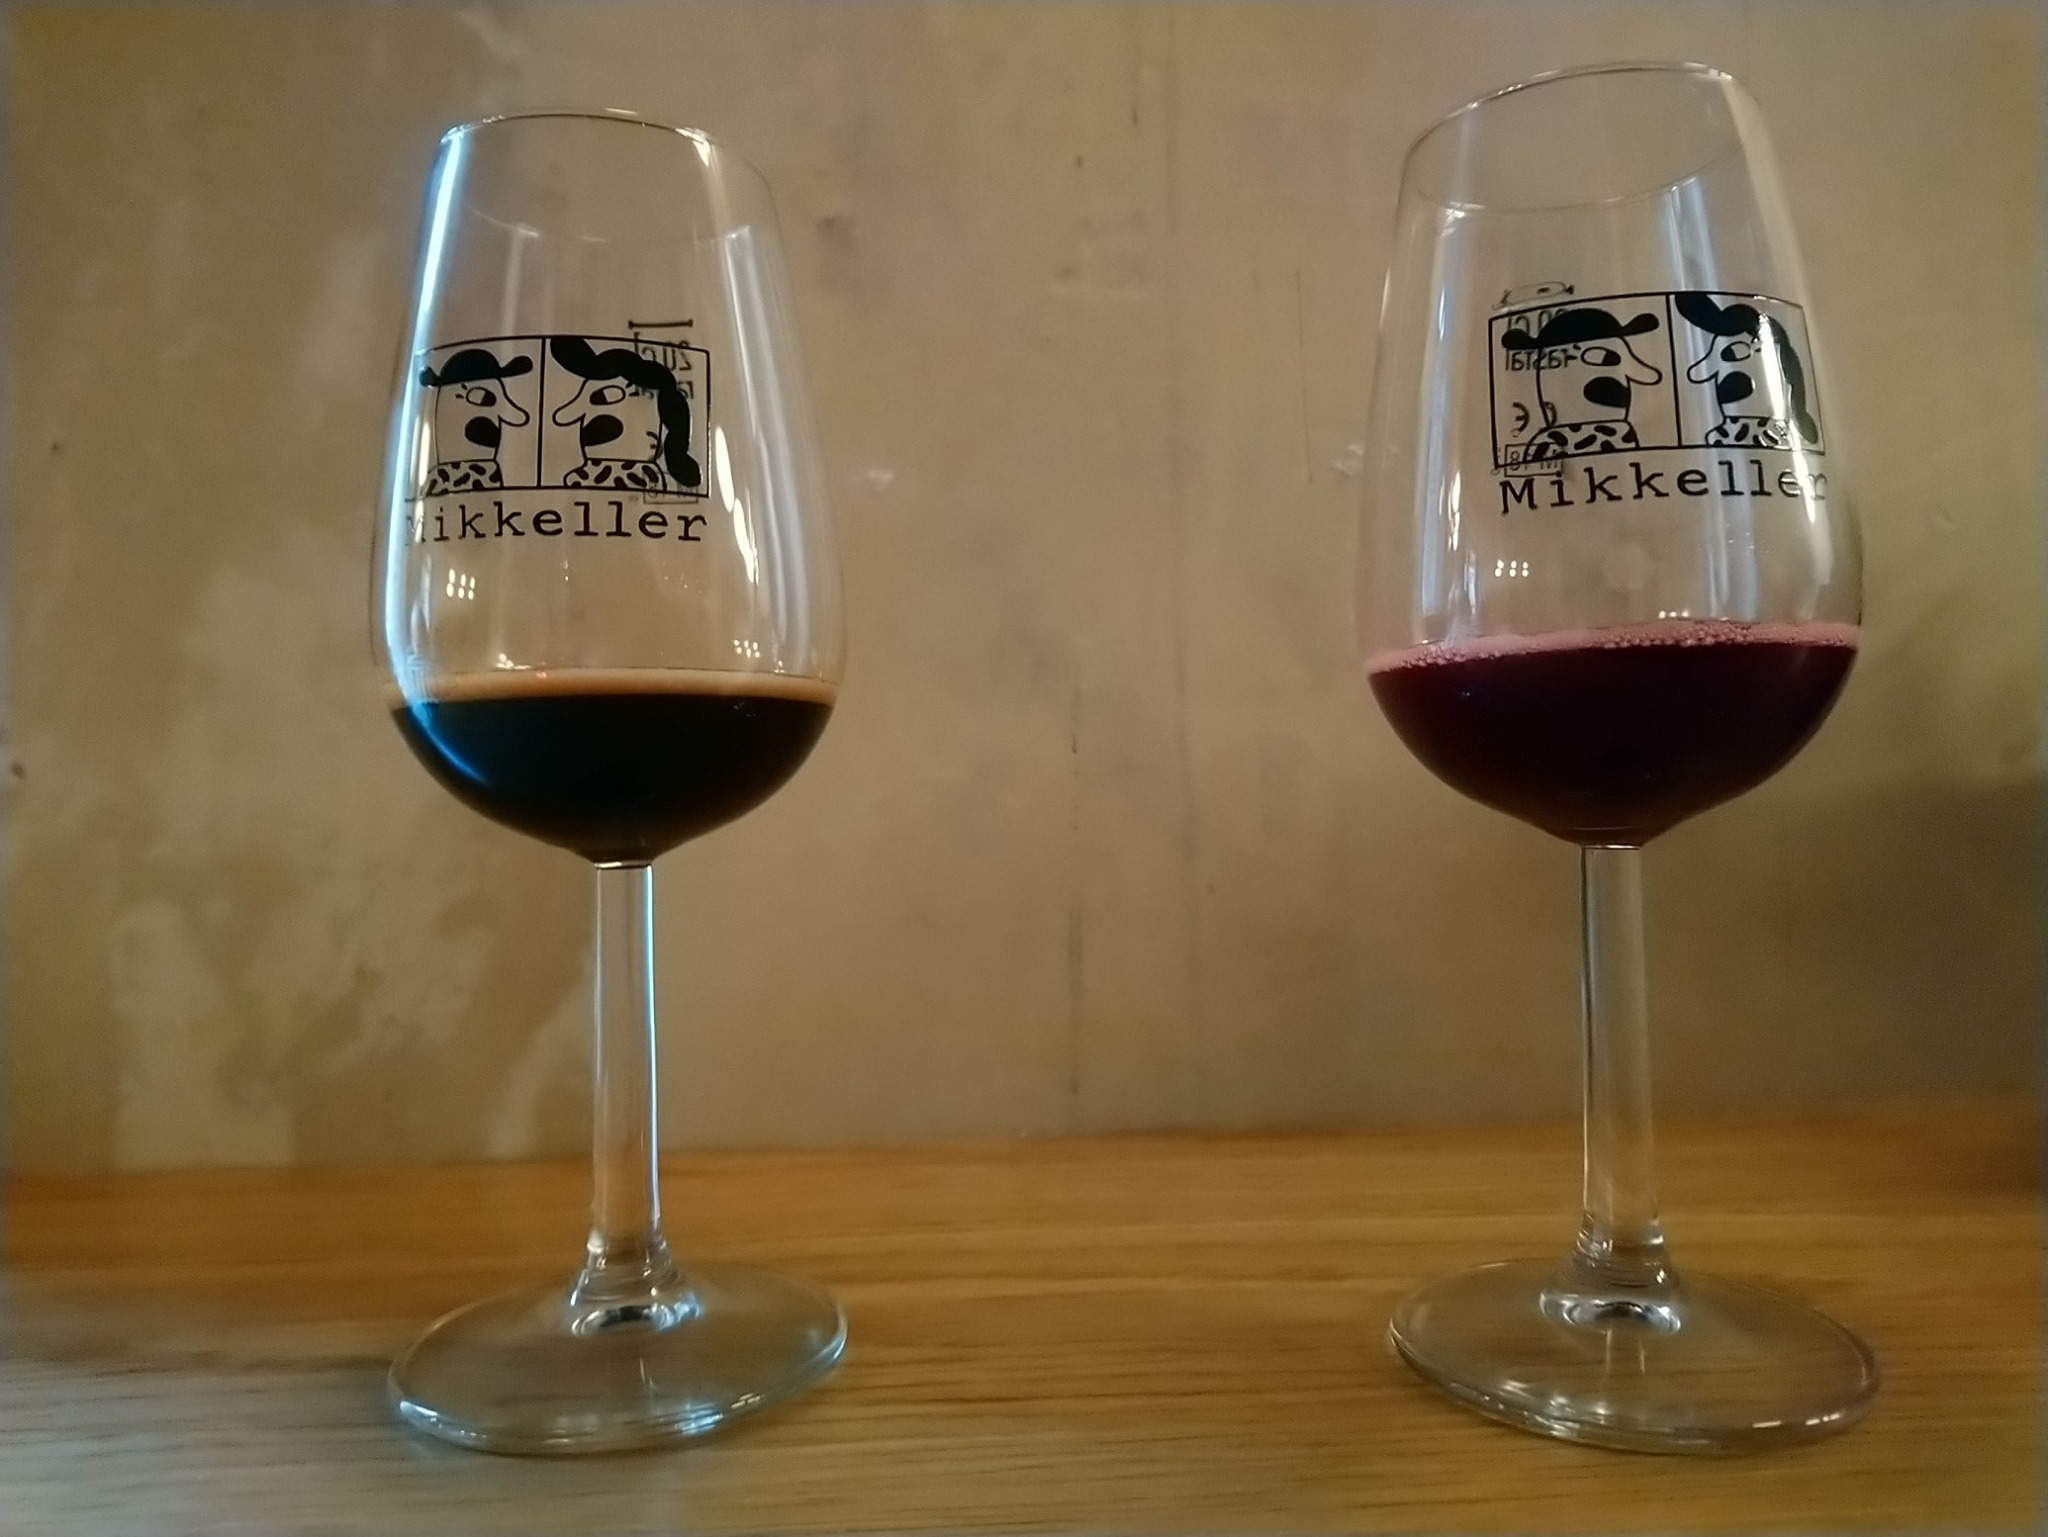 Bar Mikkeller Paris Rochechouart